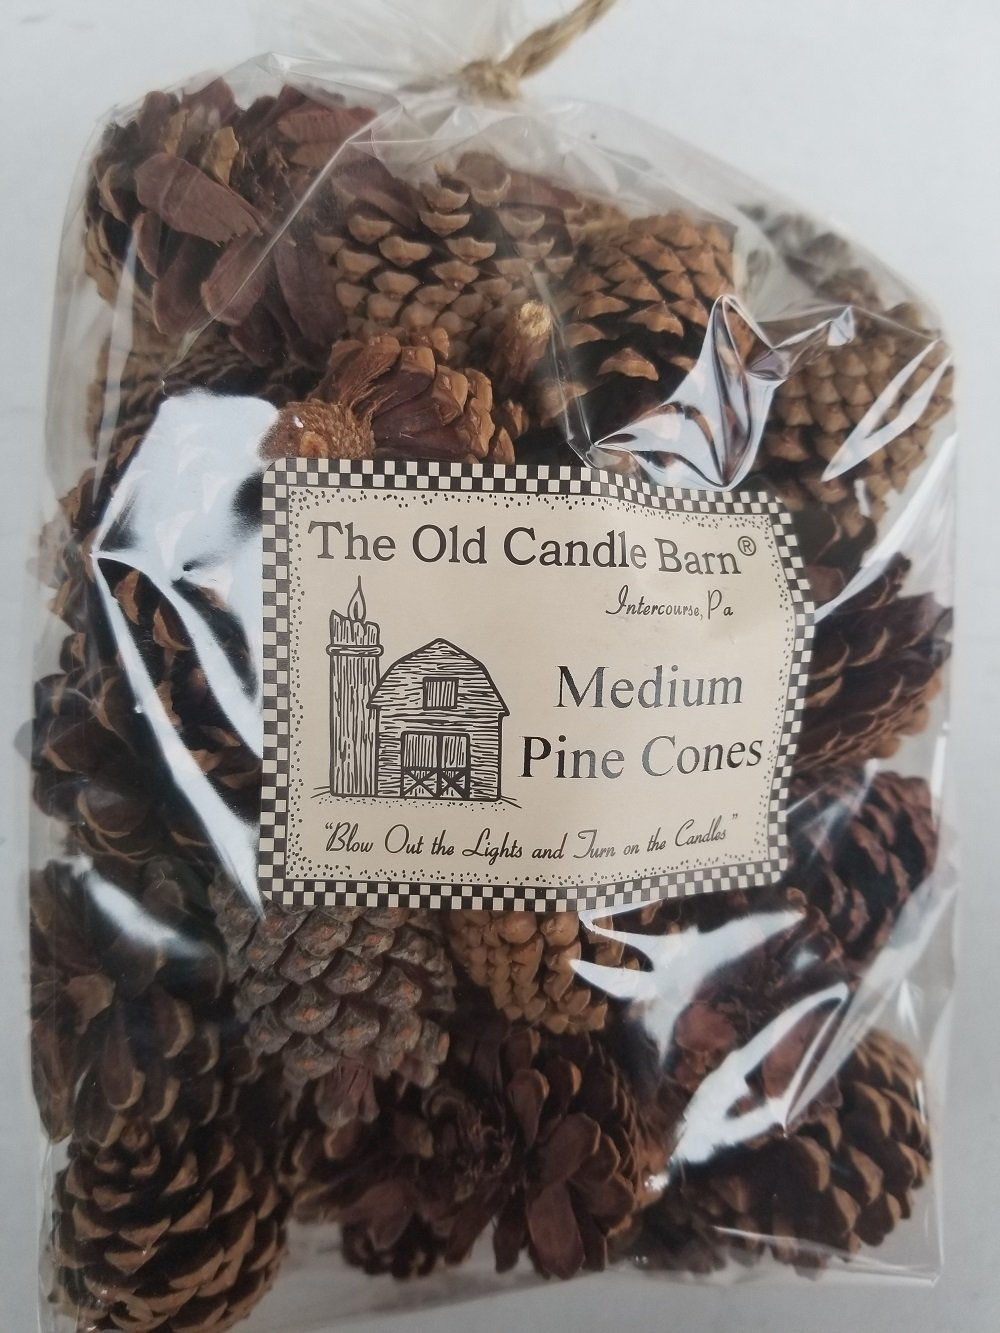 Medium Pinecones - Large Bag Perfect For Weddings or Bowl Fillers - Unscented For Decoration Or Homemade Potpourri - Made In USA by Old Candle Barn